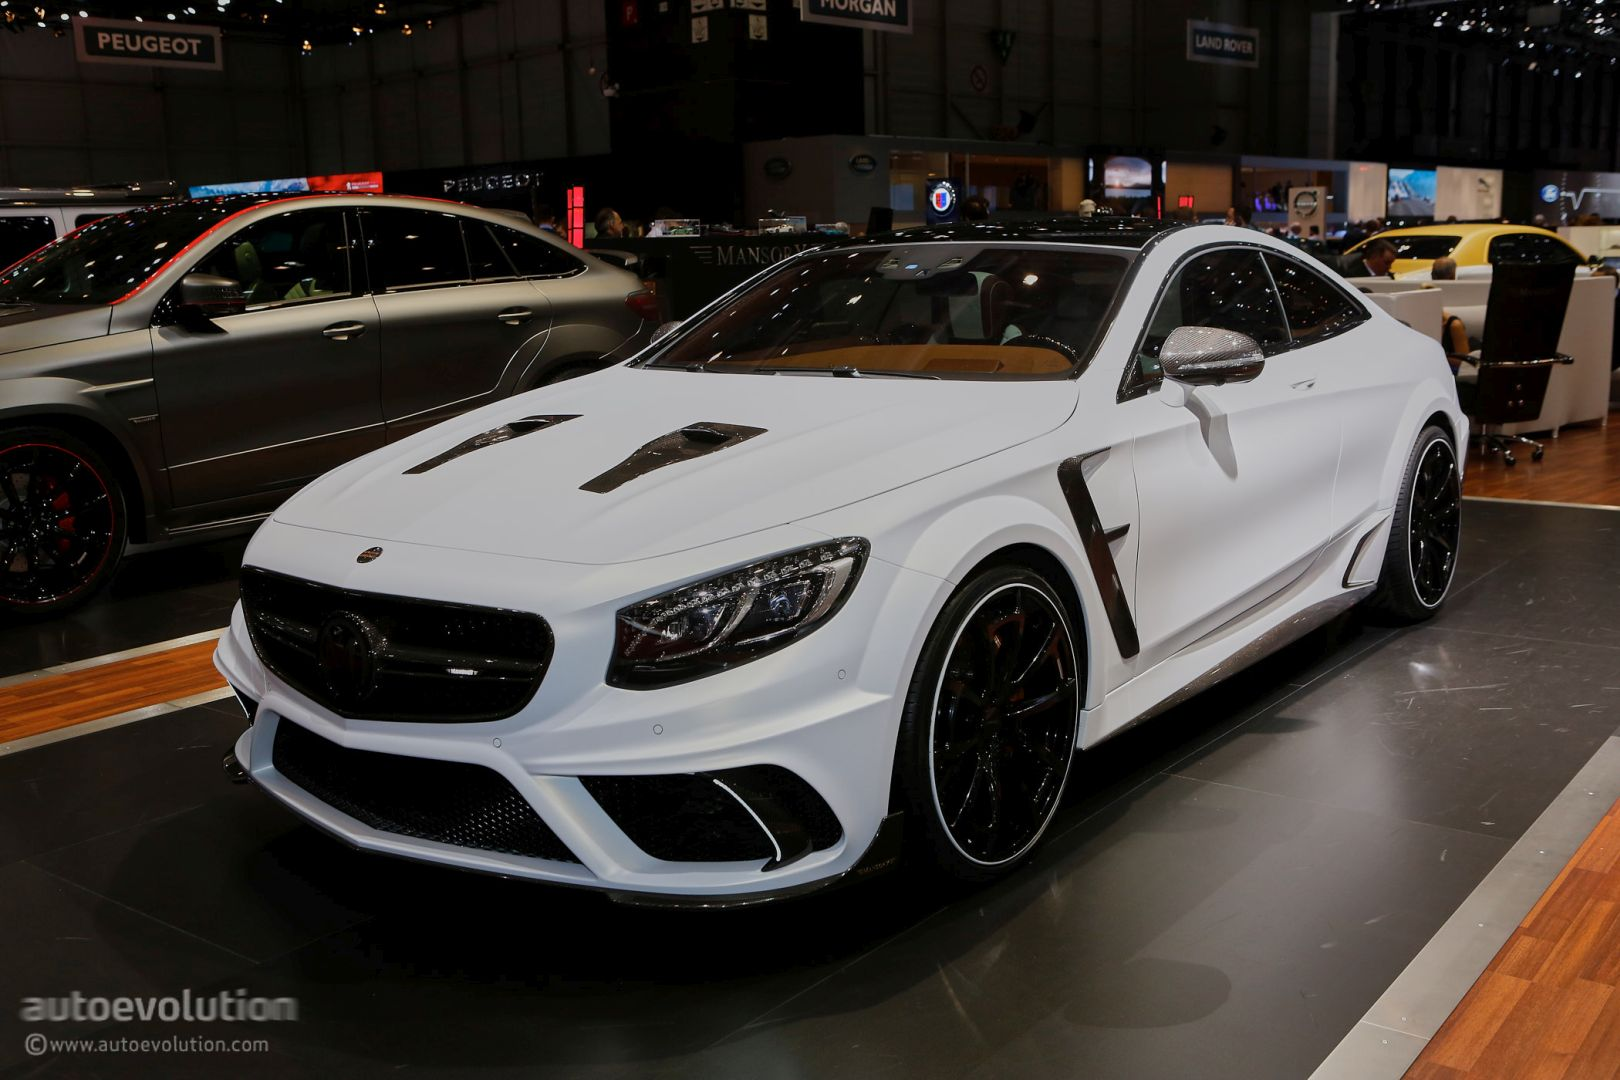 Mercedes Benz Suv Models >> Mansory's Mercedes-AMG Geneva Booth Sees GLE63 Coupe Outgunning Their 730 HP GT - autoevolution